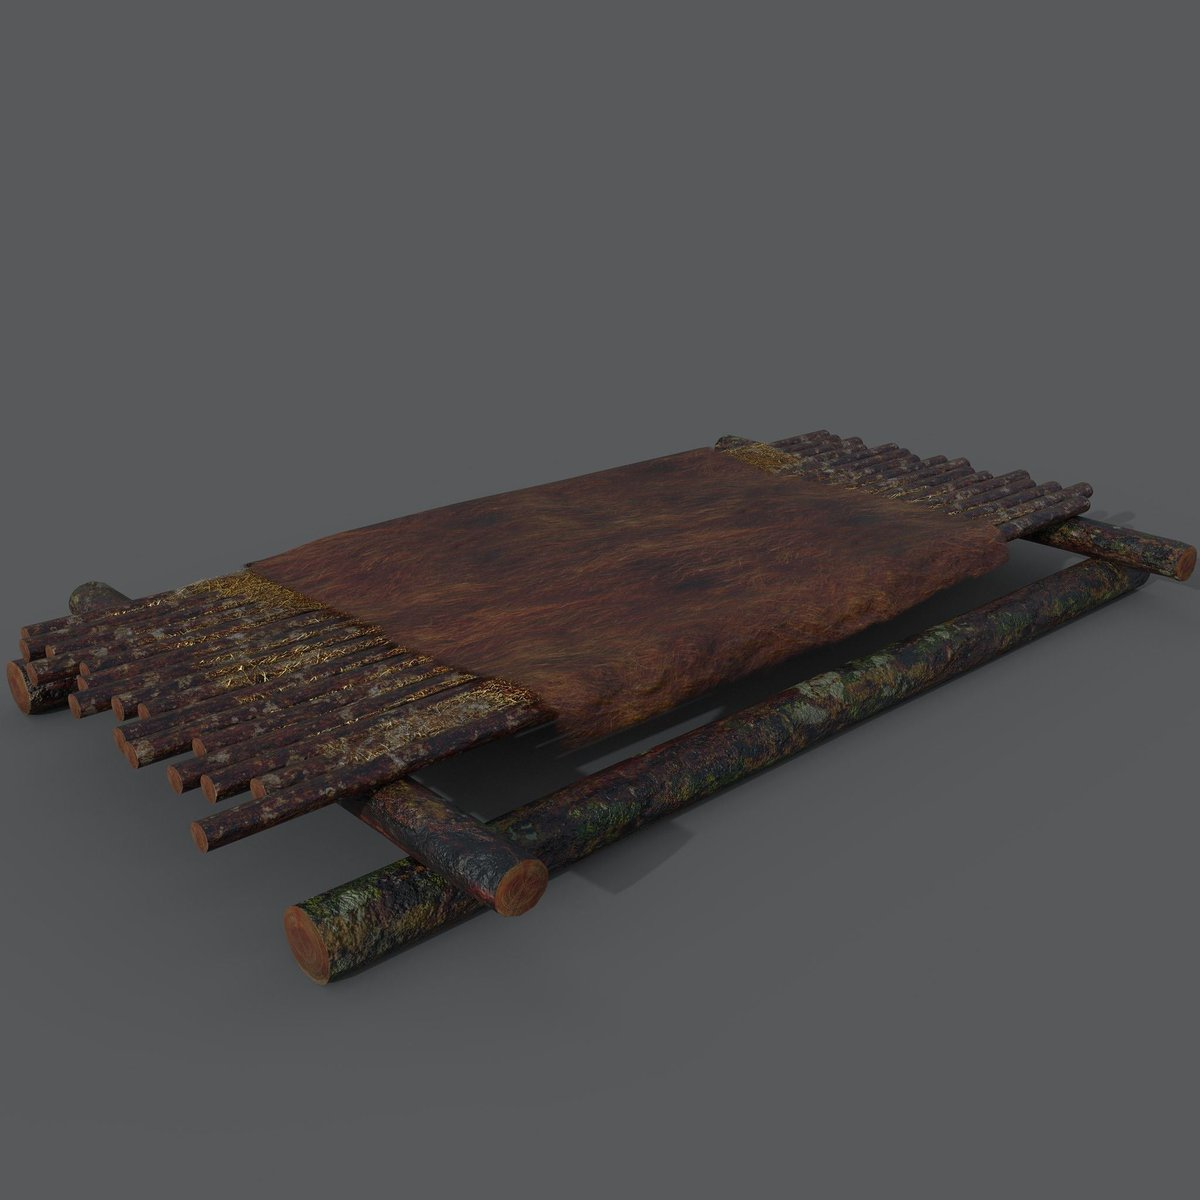 30% off for this Medieval Bed, this asset is perfect for game animation or VR :) It's available on our cgtrader page and  sketchfab.  #3D #model #maya #3dartist #3dmodel #bed #medieval #game #anination #VR #asset #sale #cgtrader #sketchfab  https://www.cgtrader.com/3d-models/furniture/bed/medieval-bed…pic.twitter.com/N0PTja2ZuC